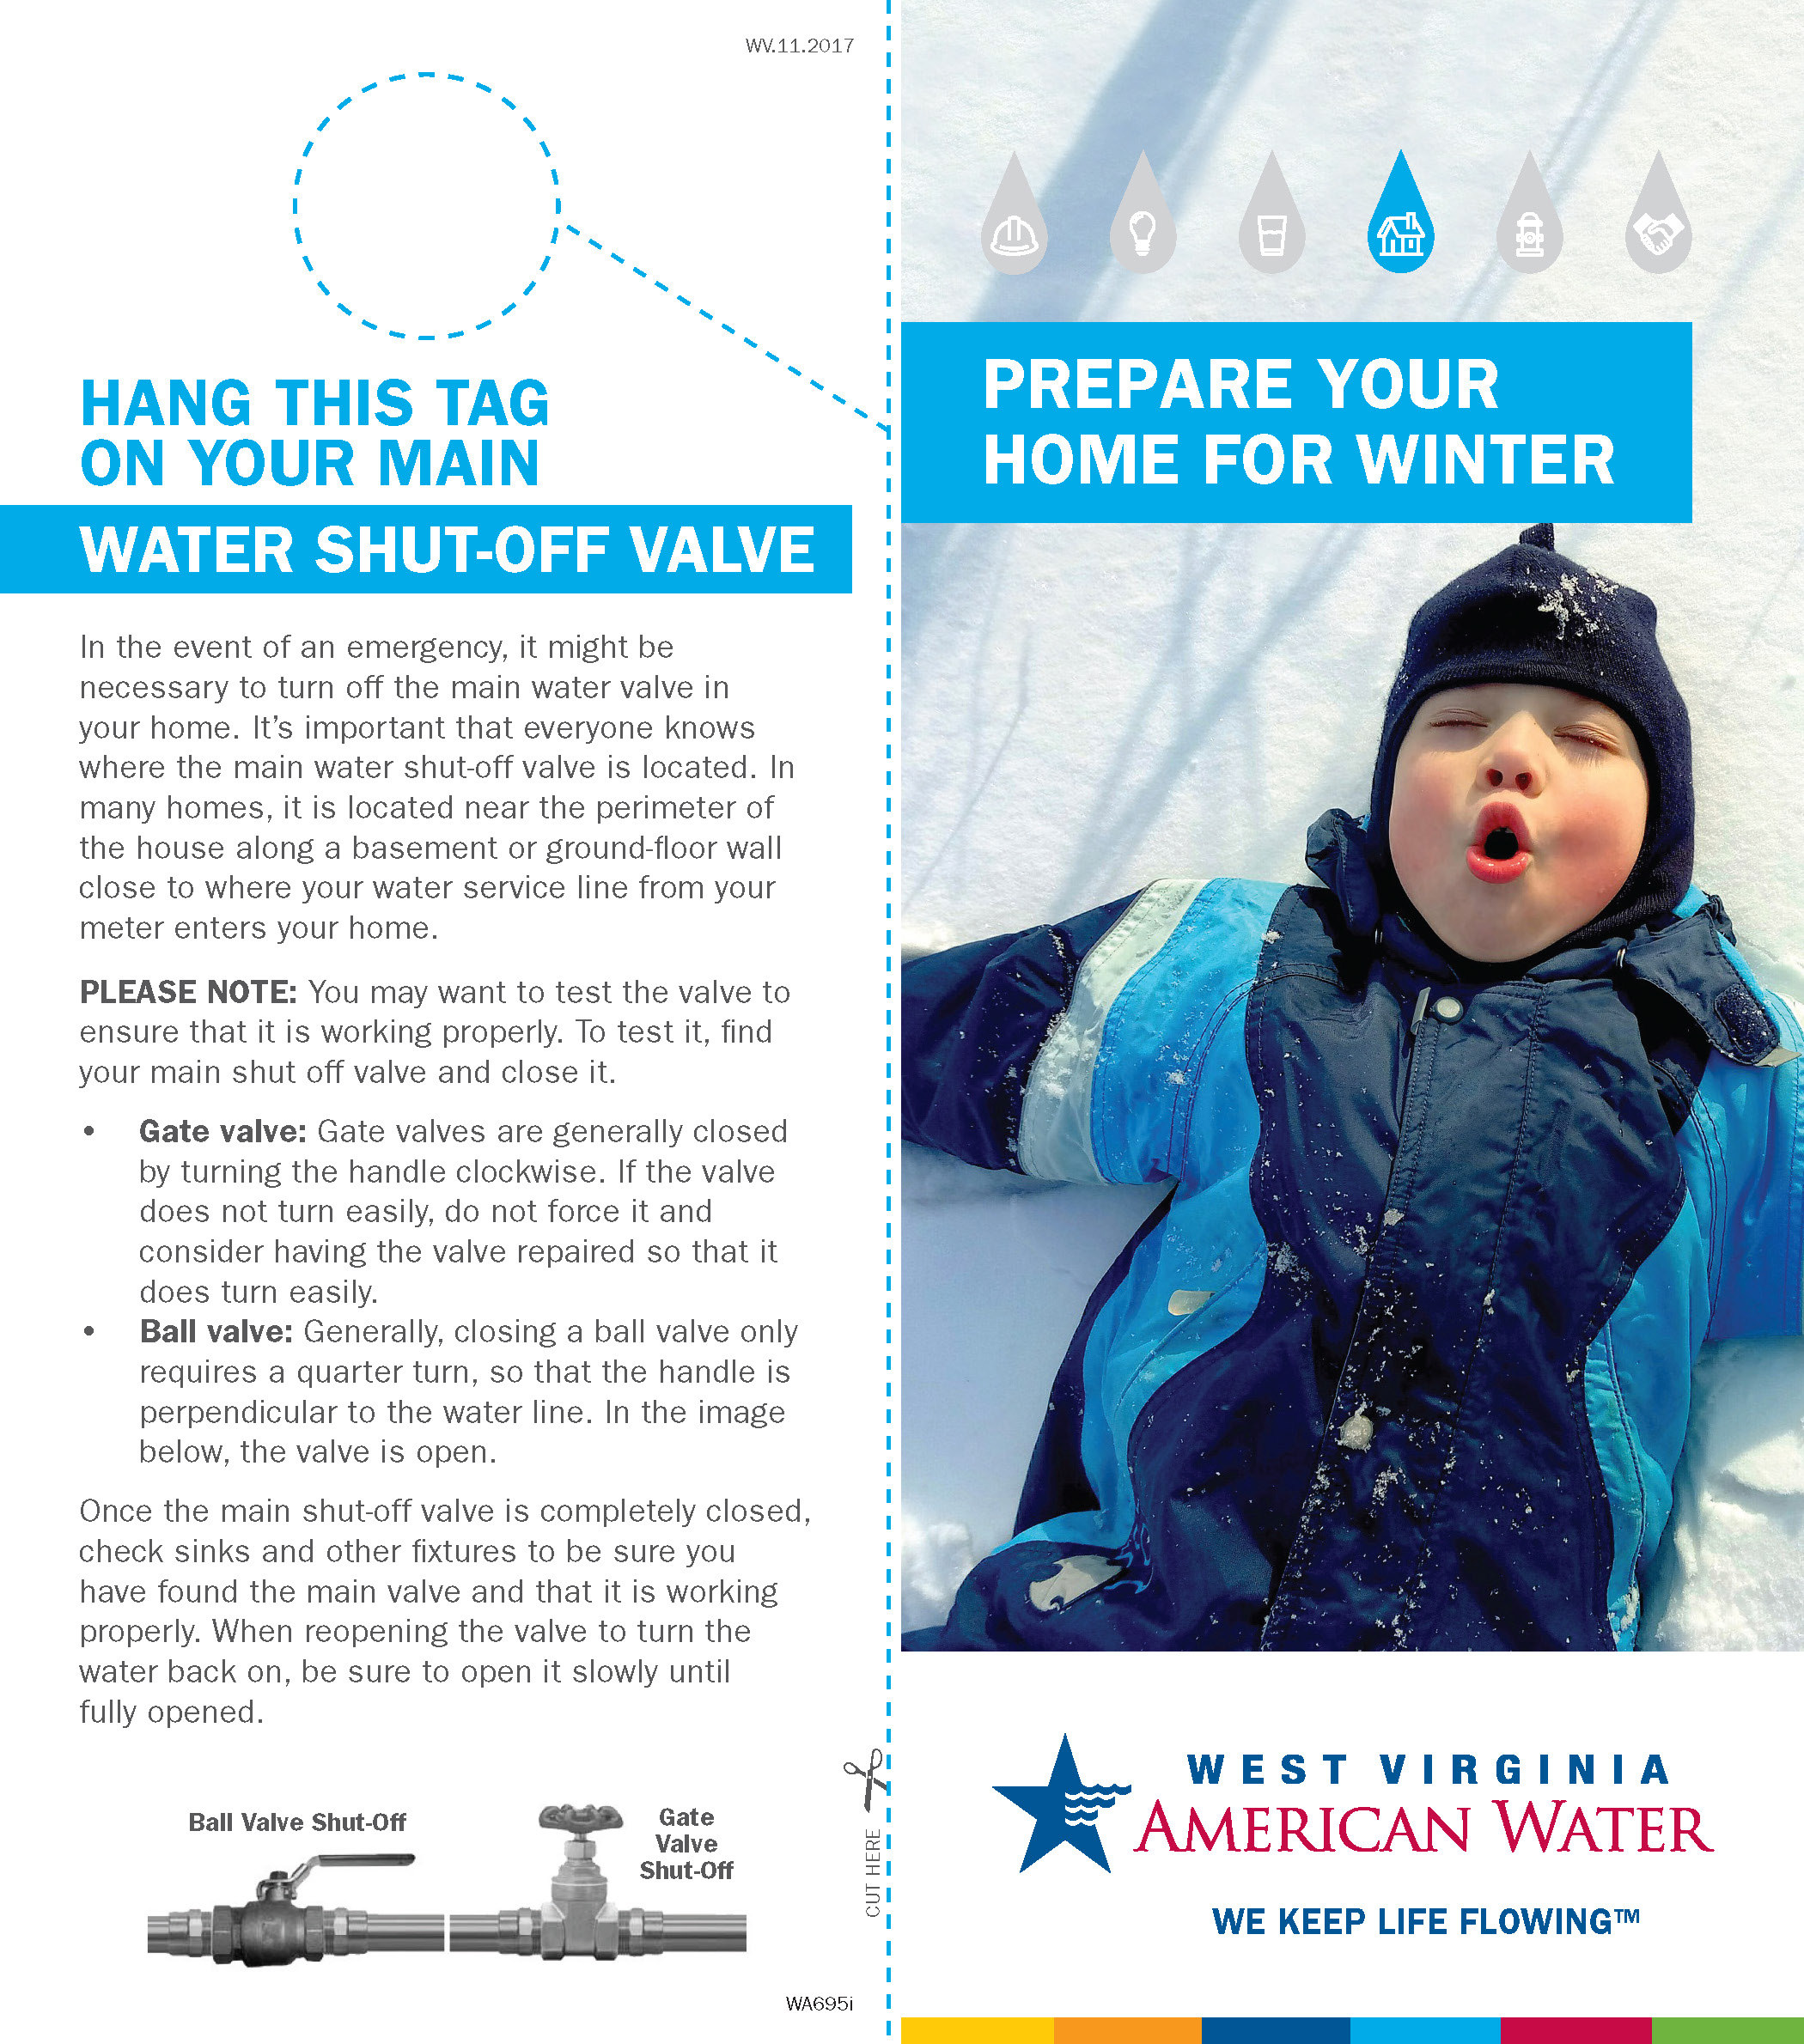 West Virginia American Water Reminds Customers to Prepare Their ...